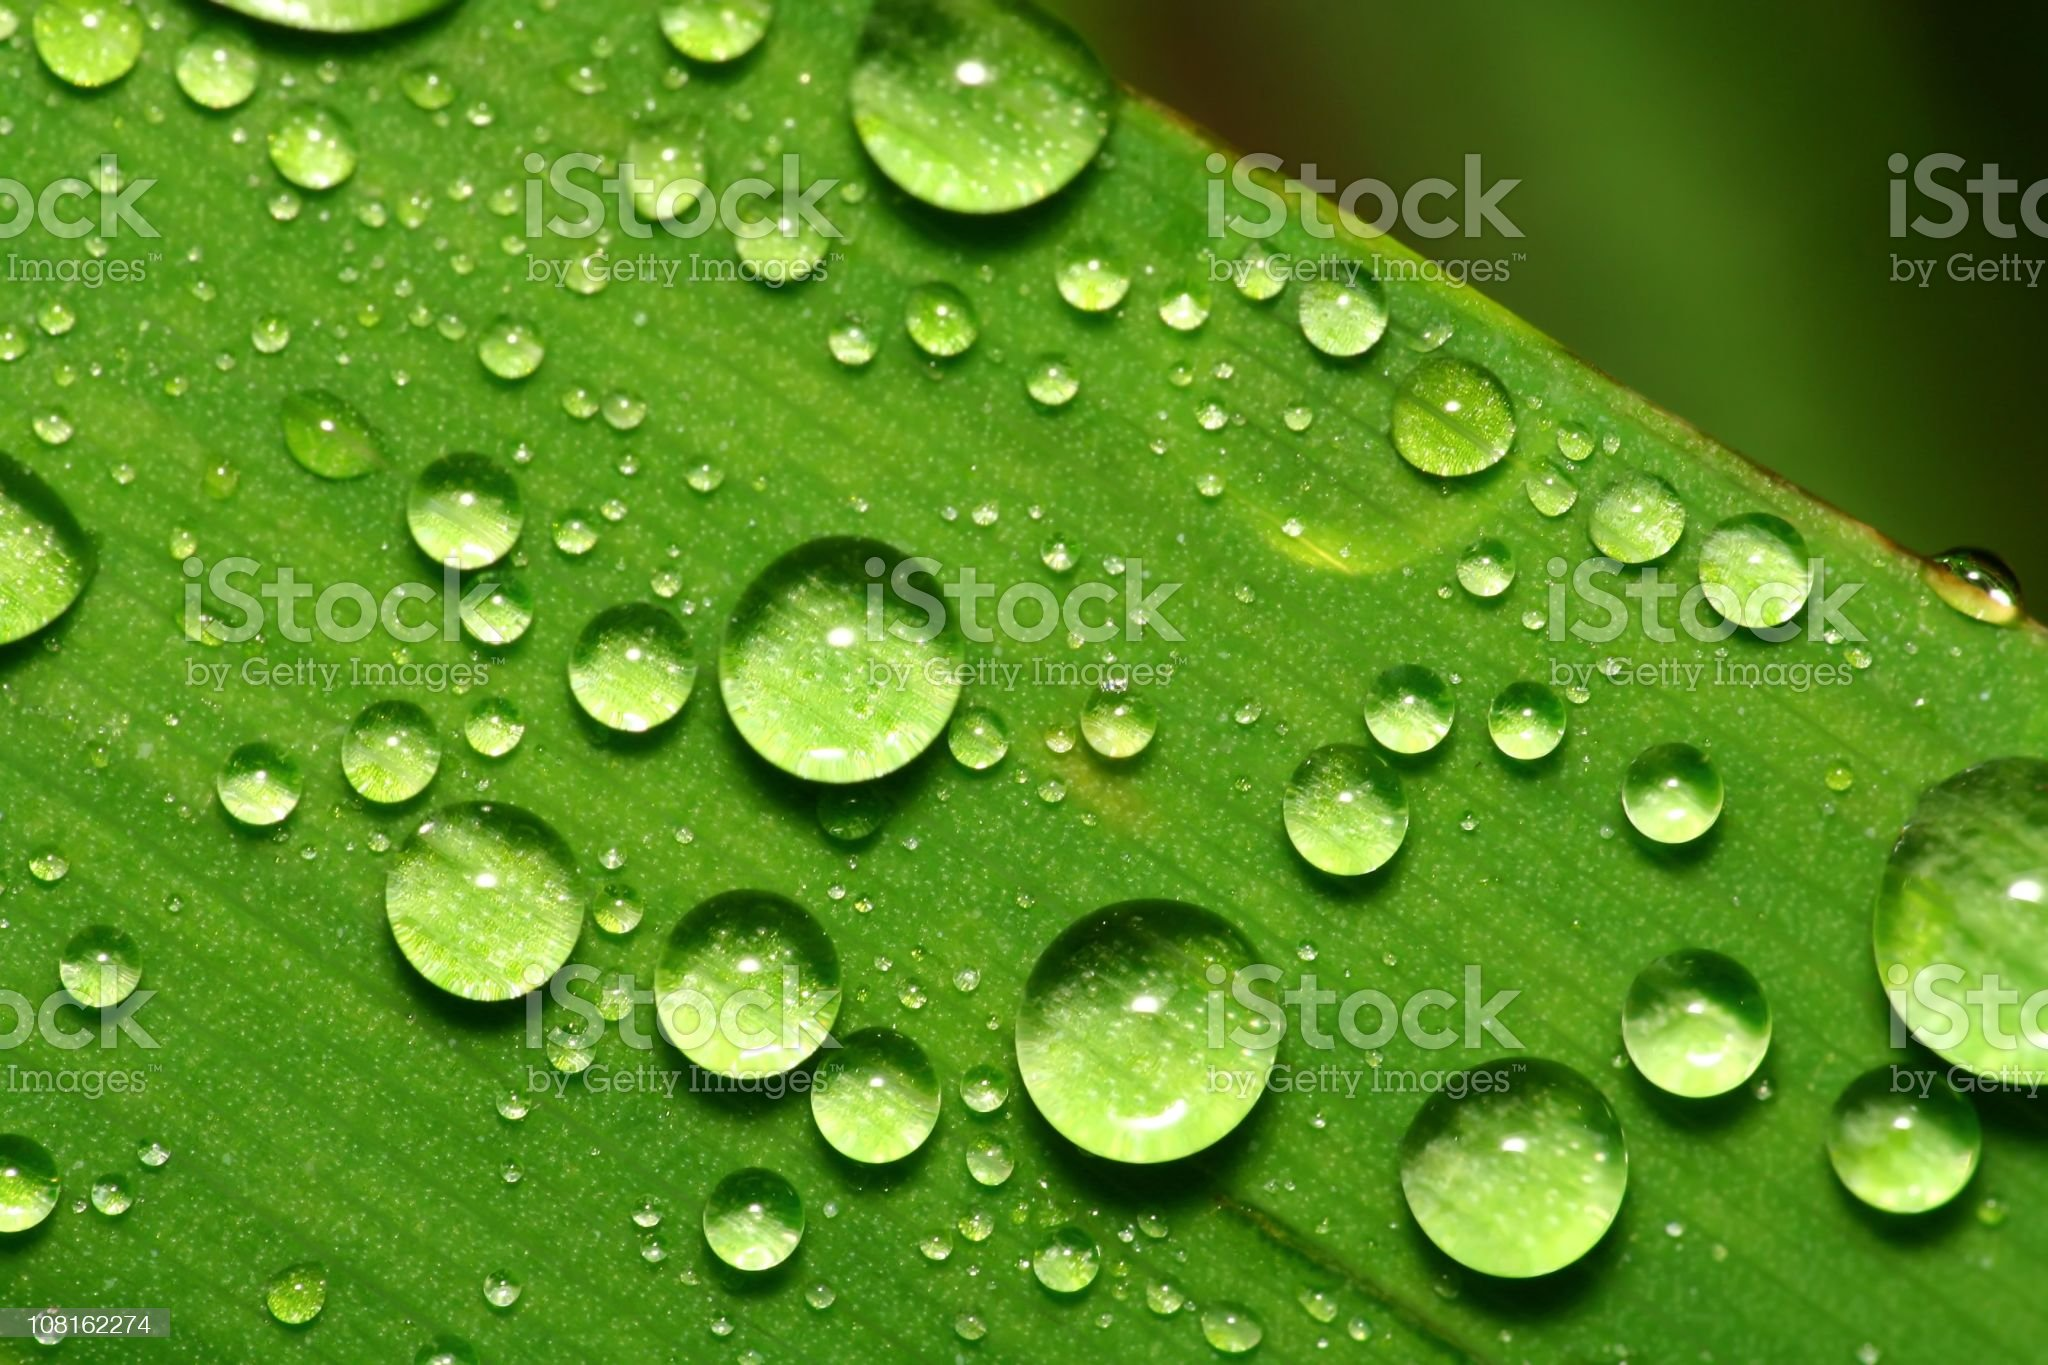 Drops on Blade of Grass royalty-free stock photo